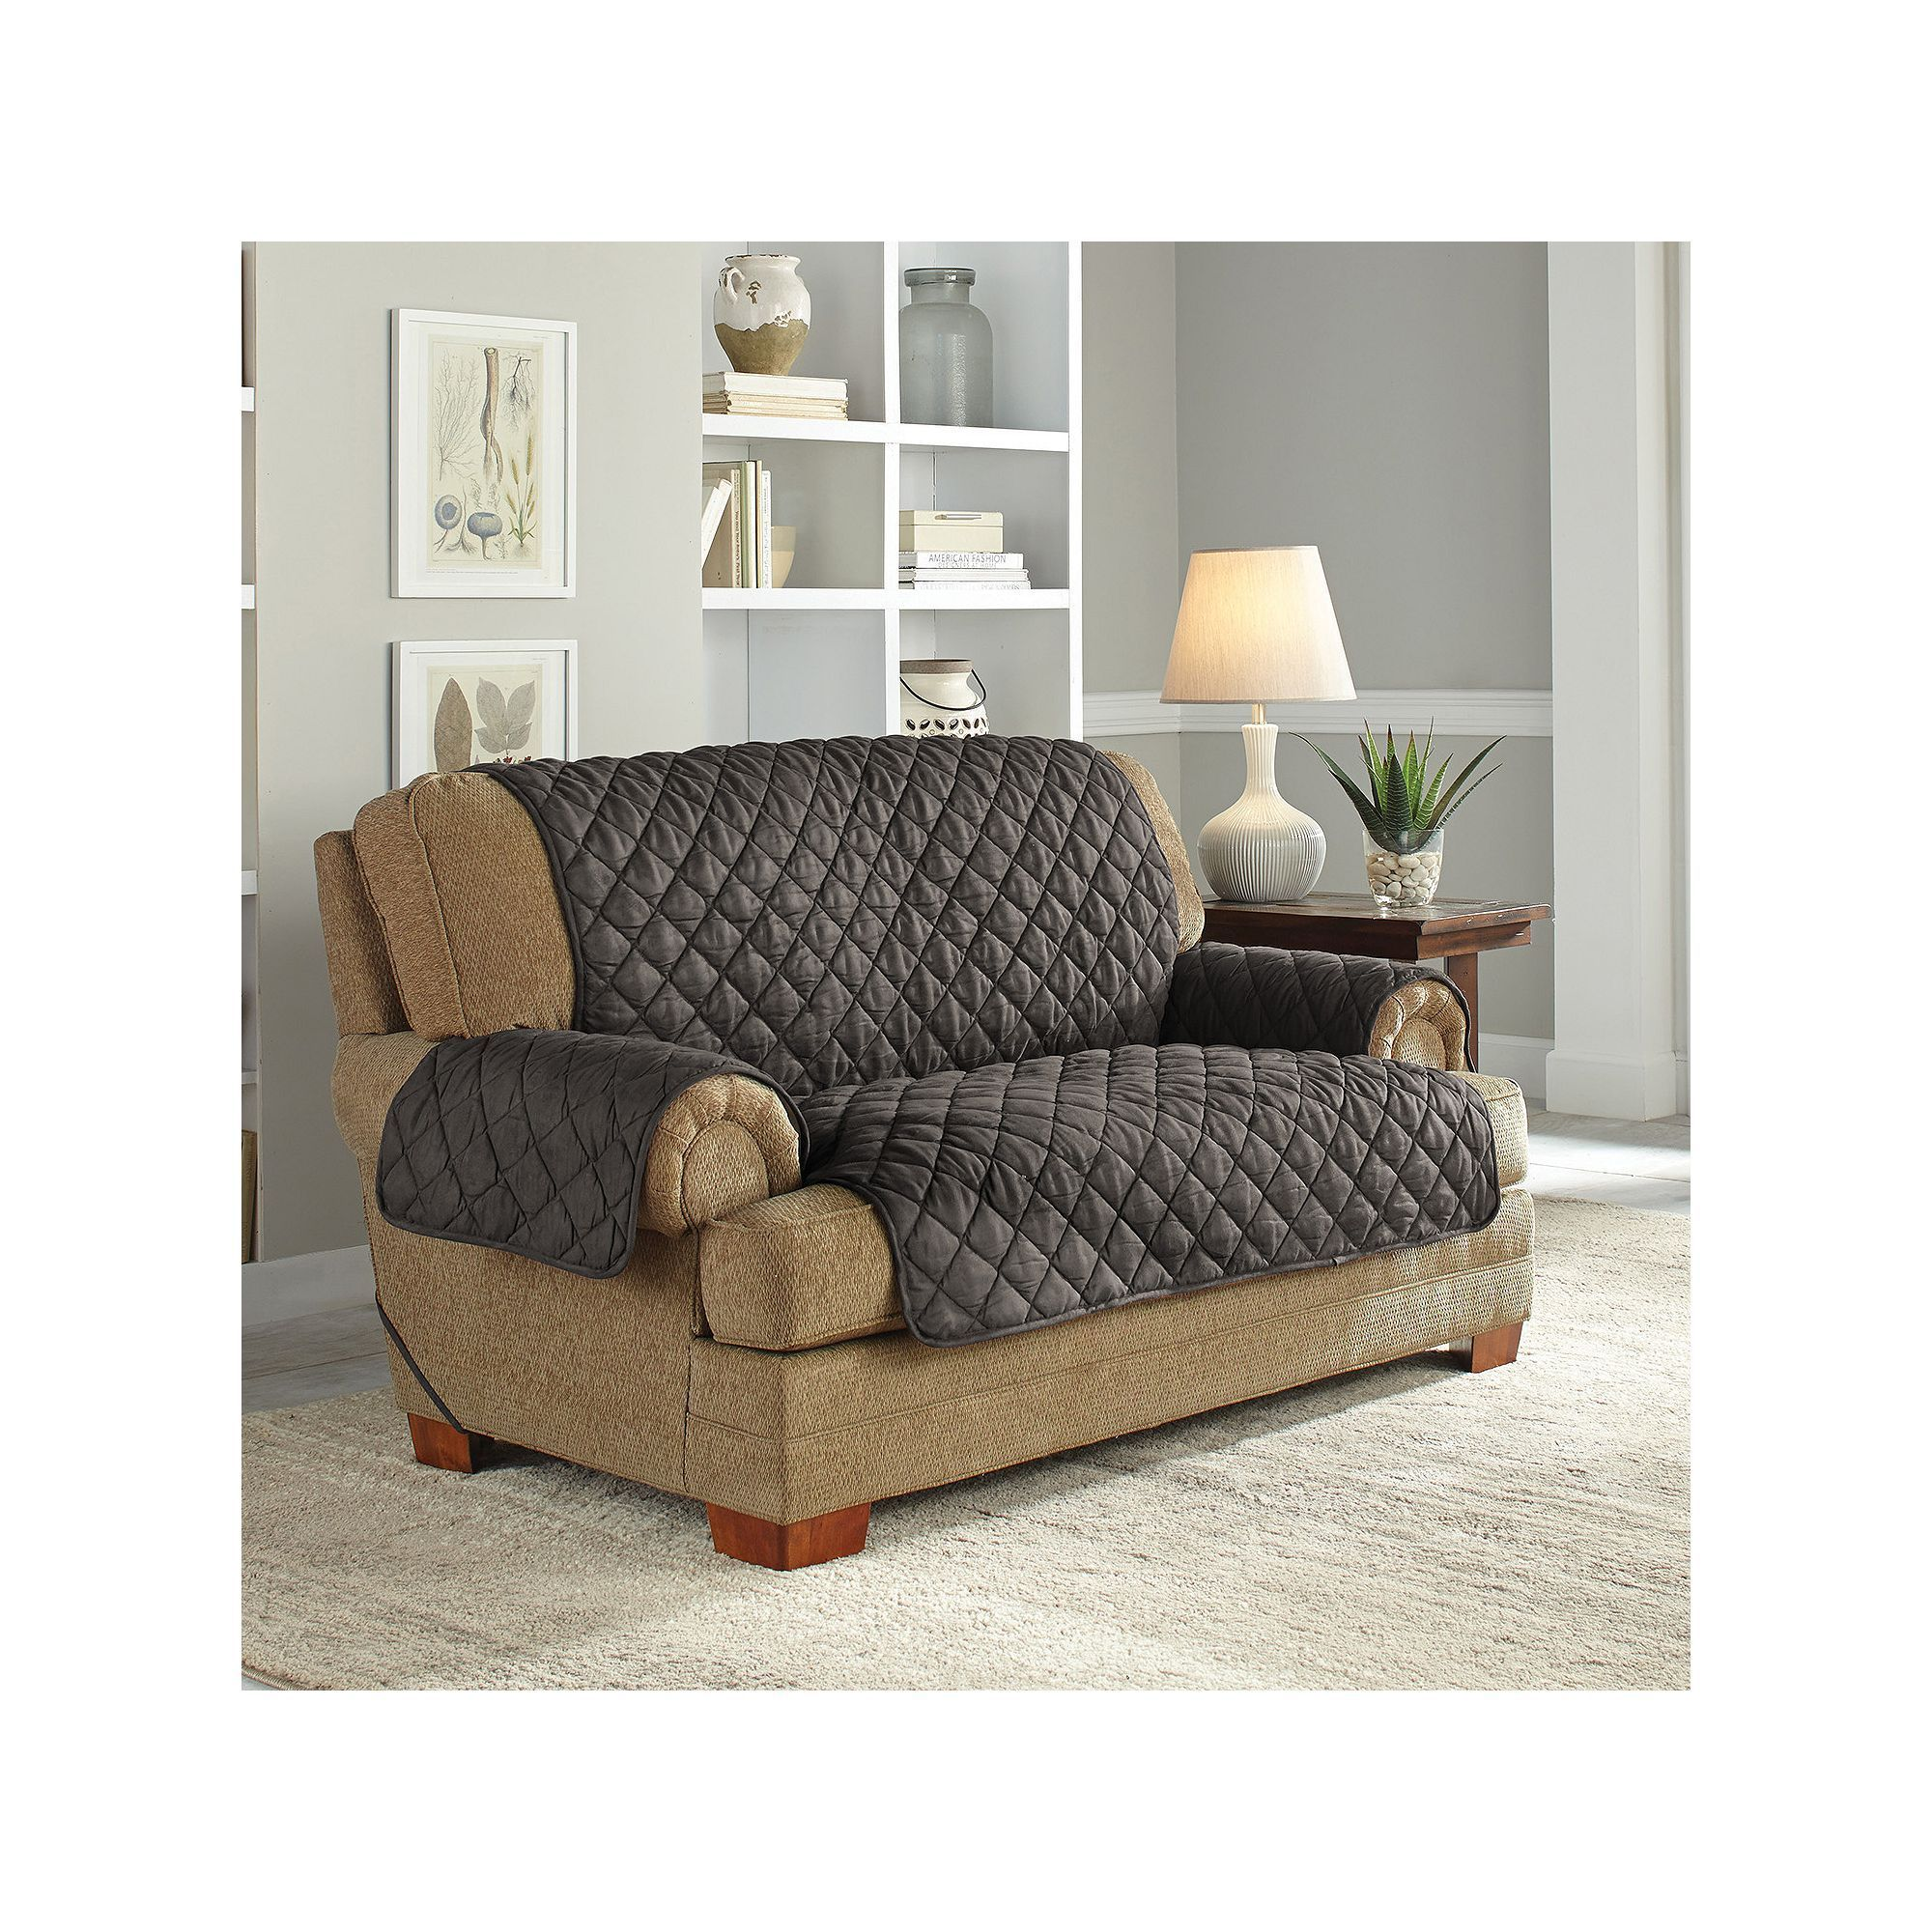 box awesome basicsa basics sofa ideas attachment wayfair loveseat for cushion slipcovers elegant set and slipcover of